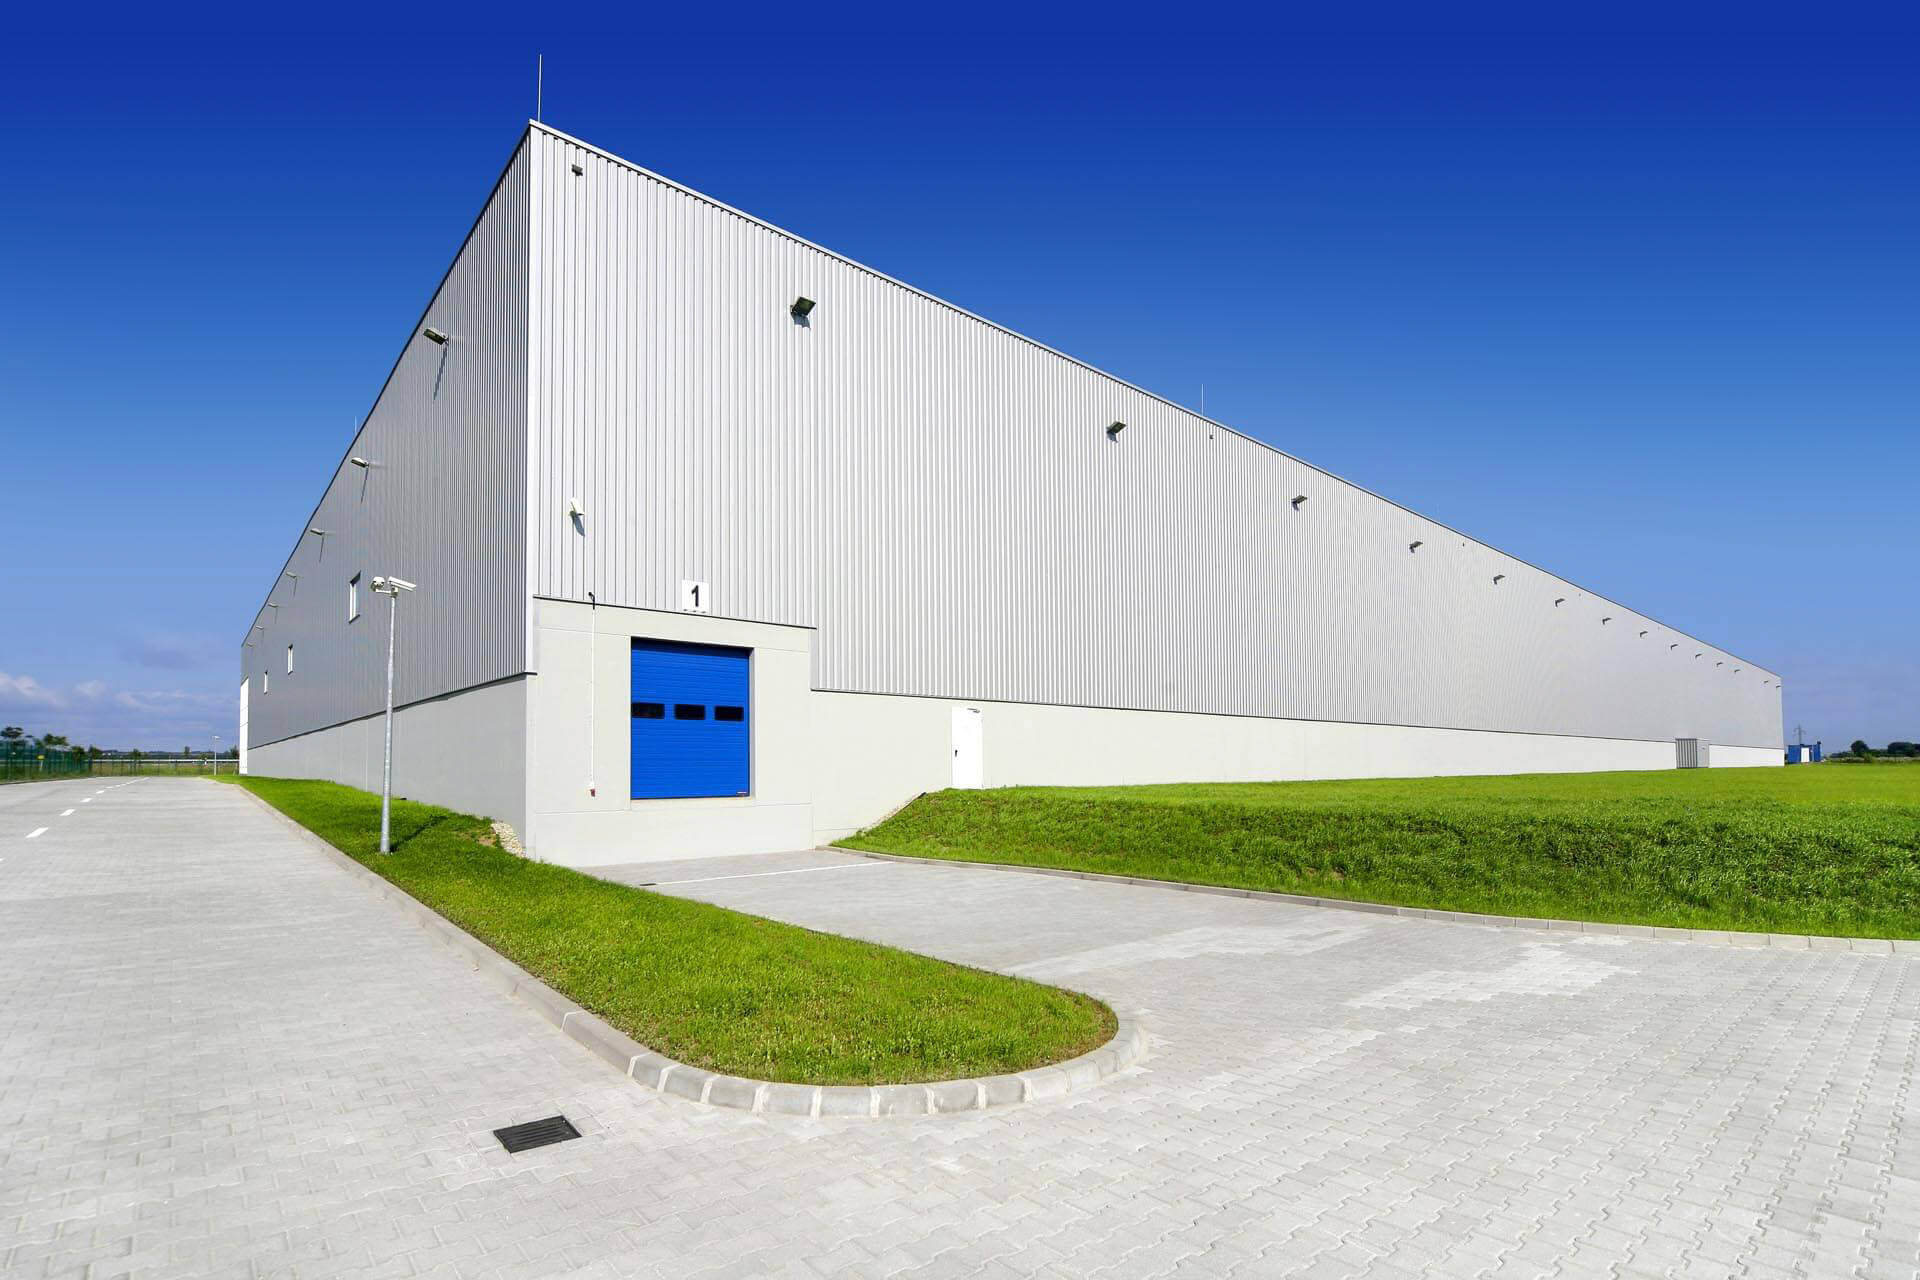 Grey wall cladding to factory with blue goods in door and concrete access roads.